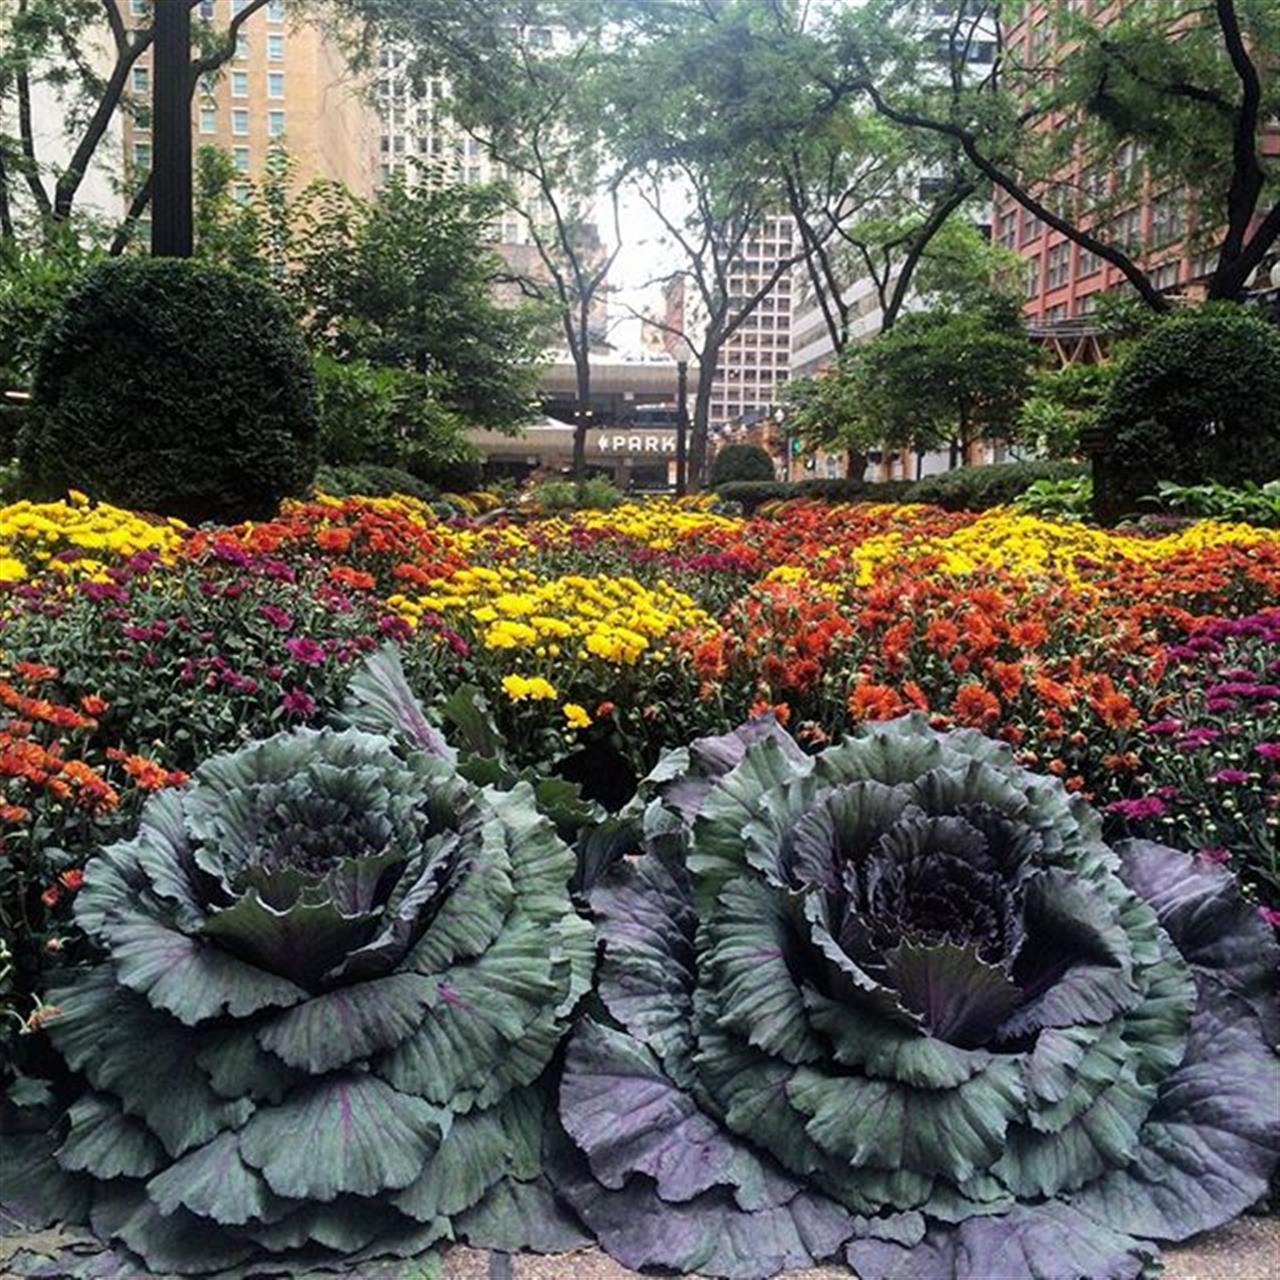 Foliage and flowers #chicago #theloop #leadingrelocal #fall